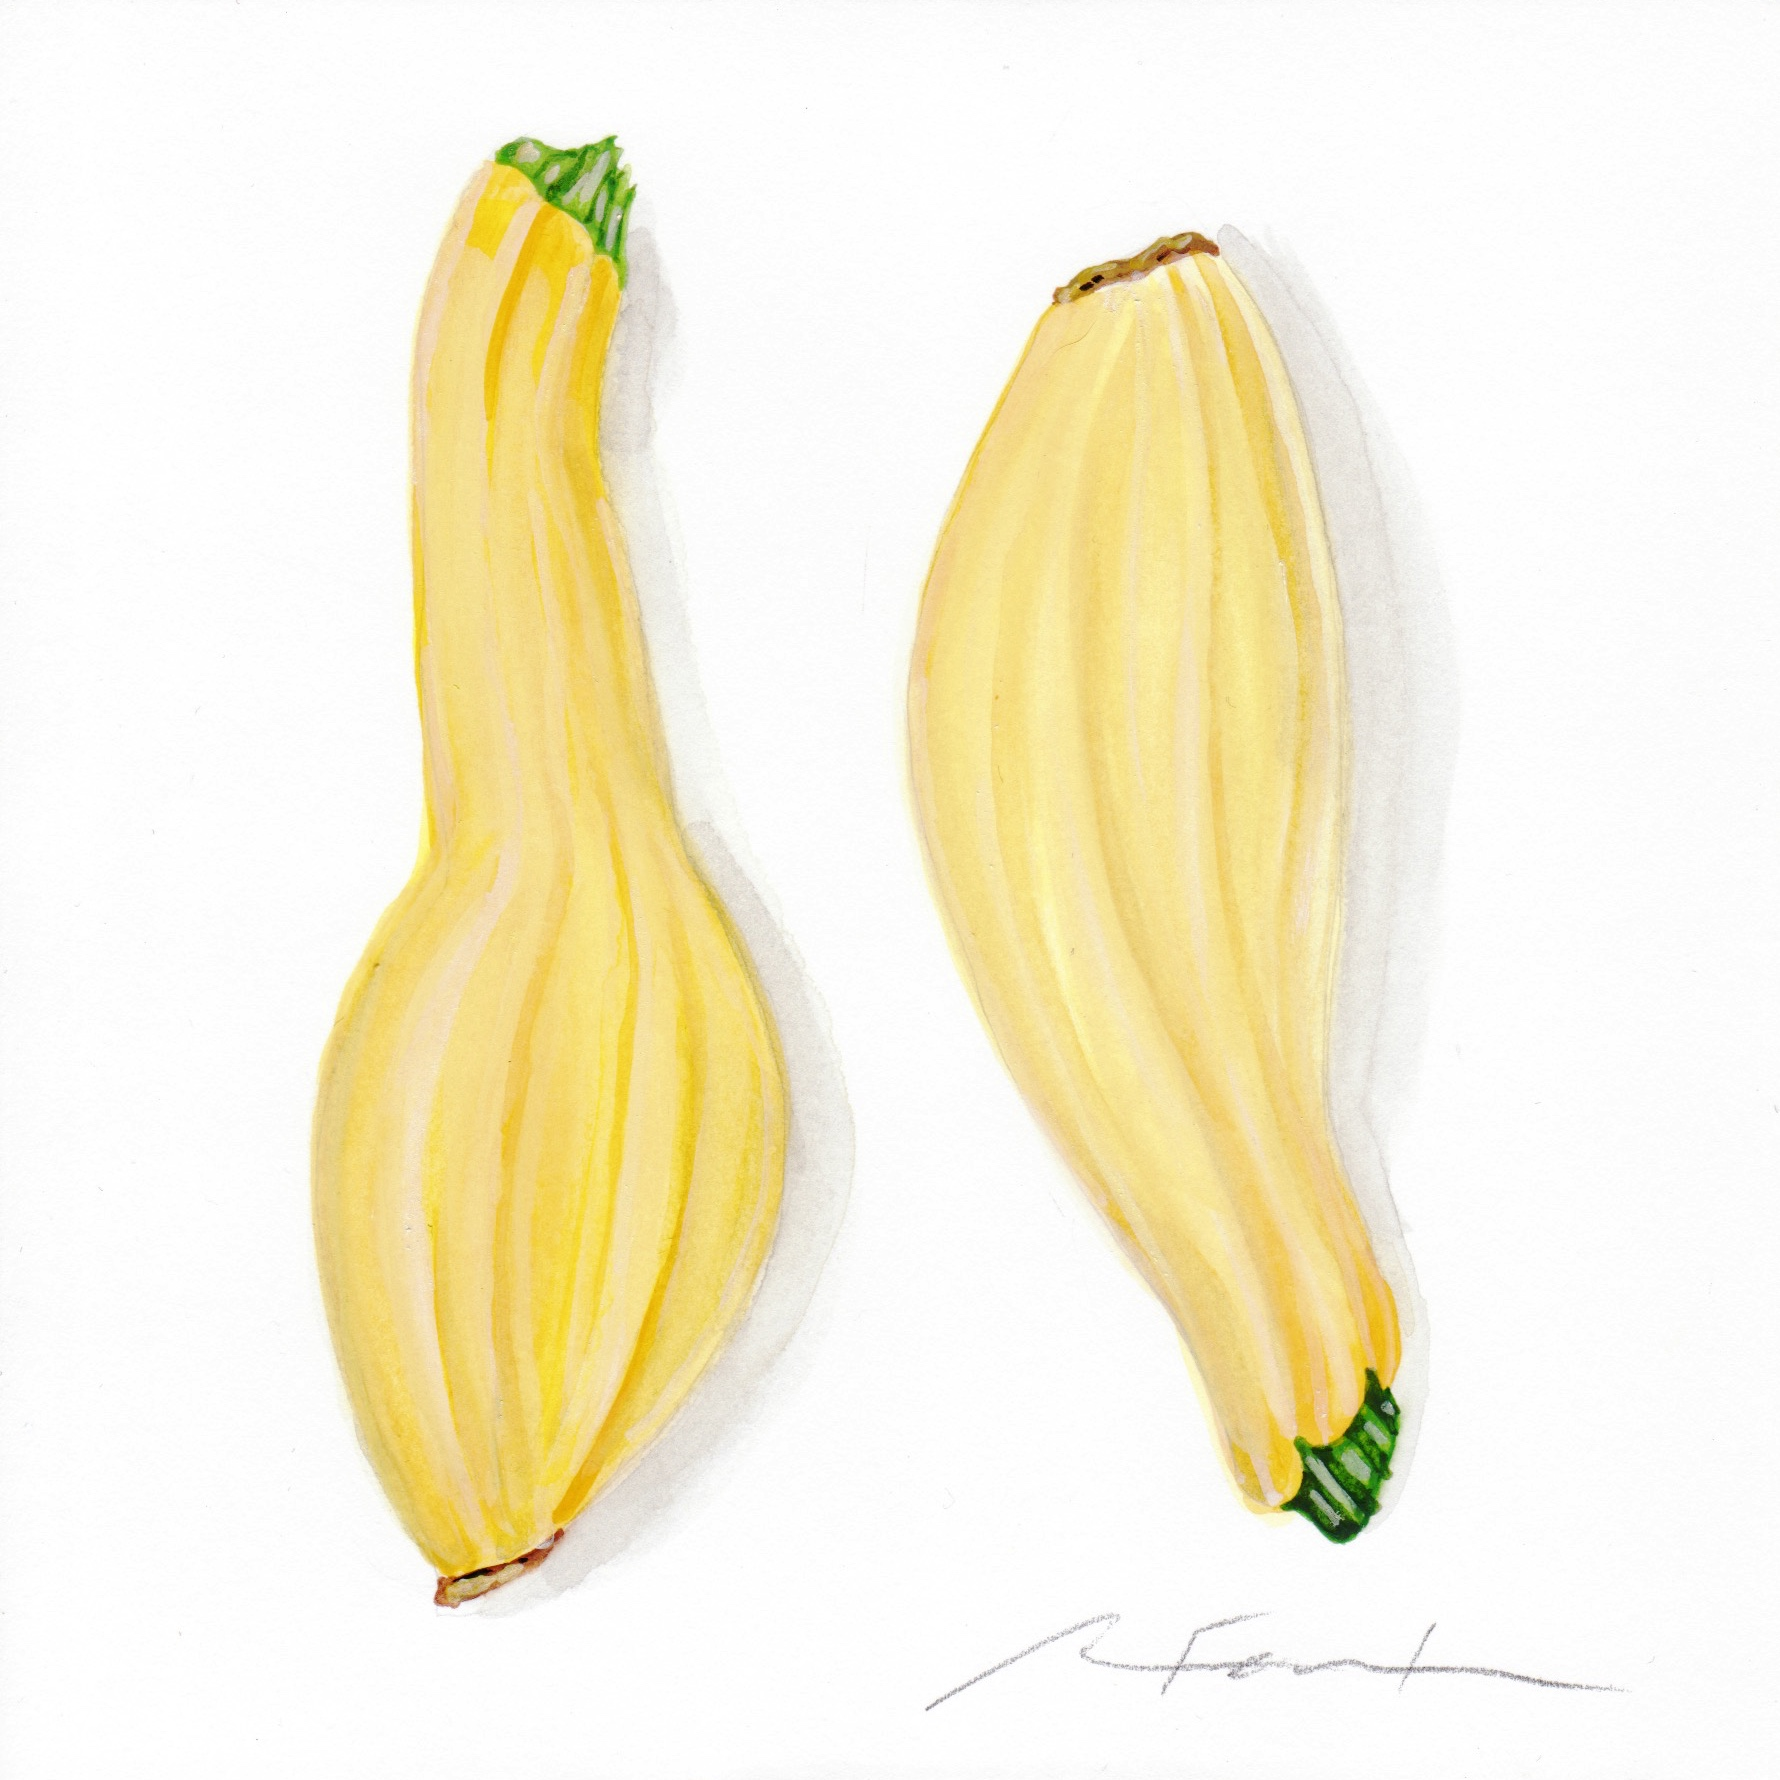 Yellow squash watercolor study